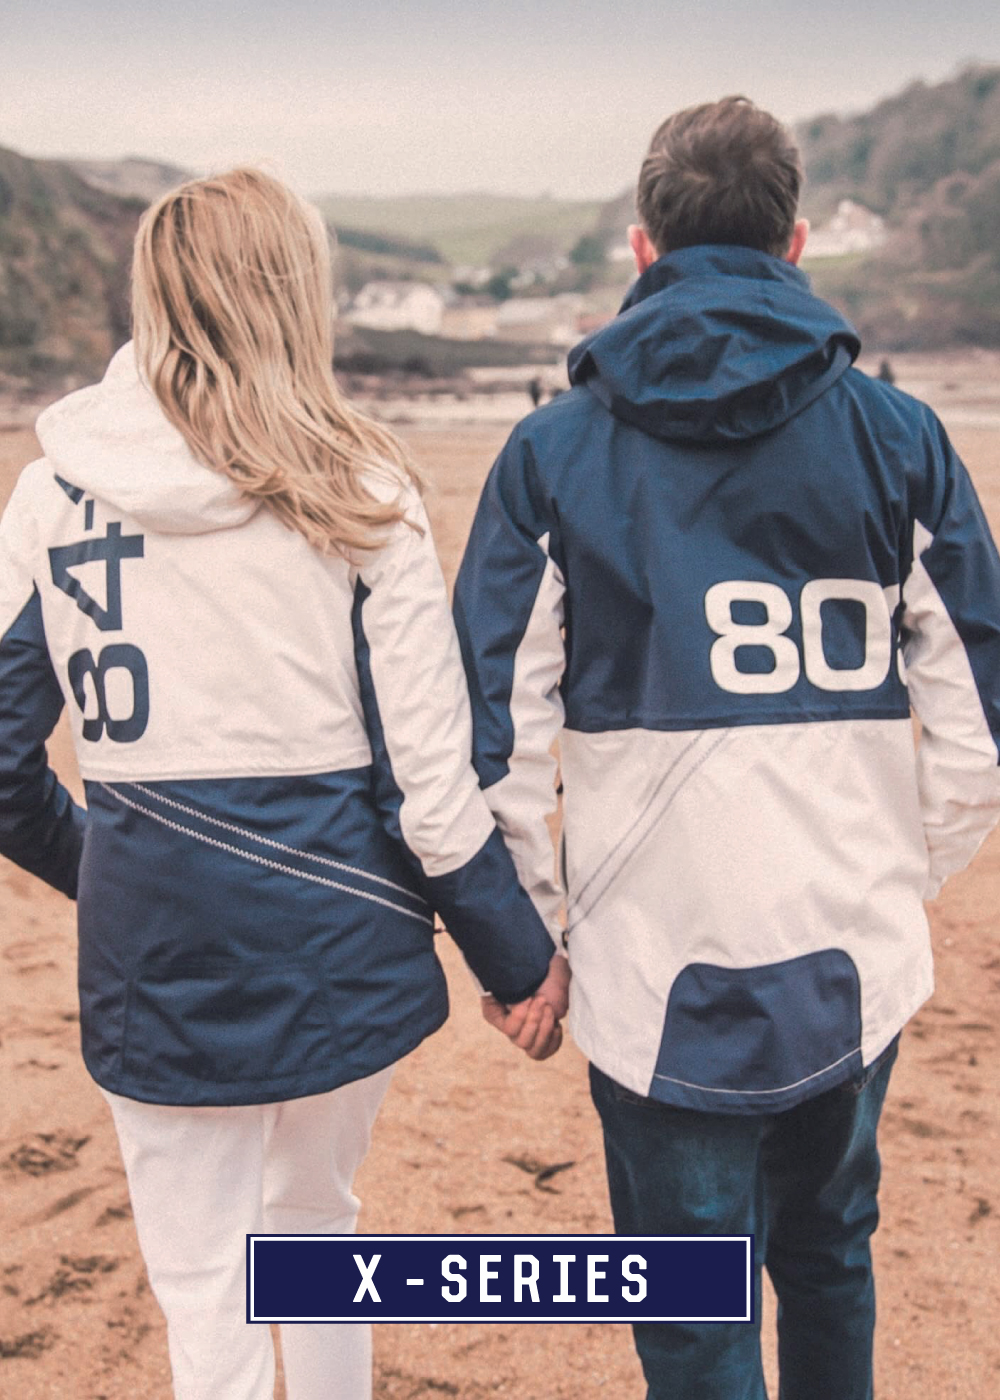 Quba & Co - Iconic X-Series Sailing Technical Jackets